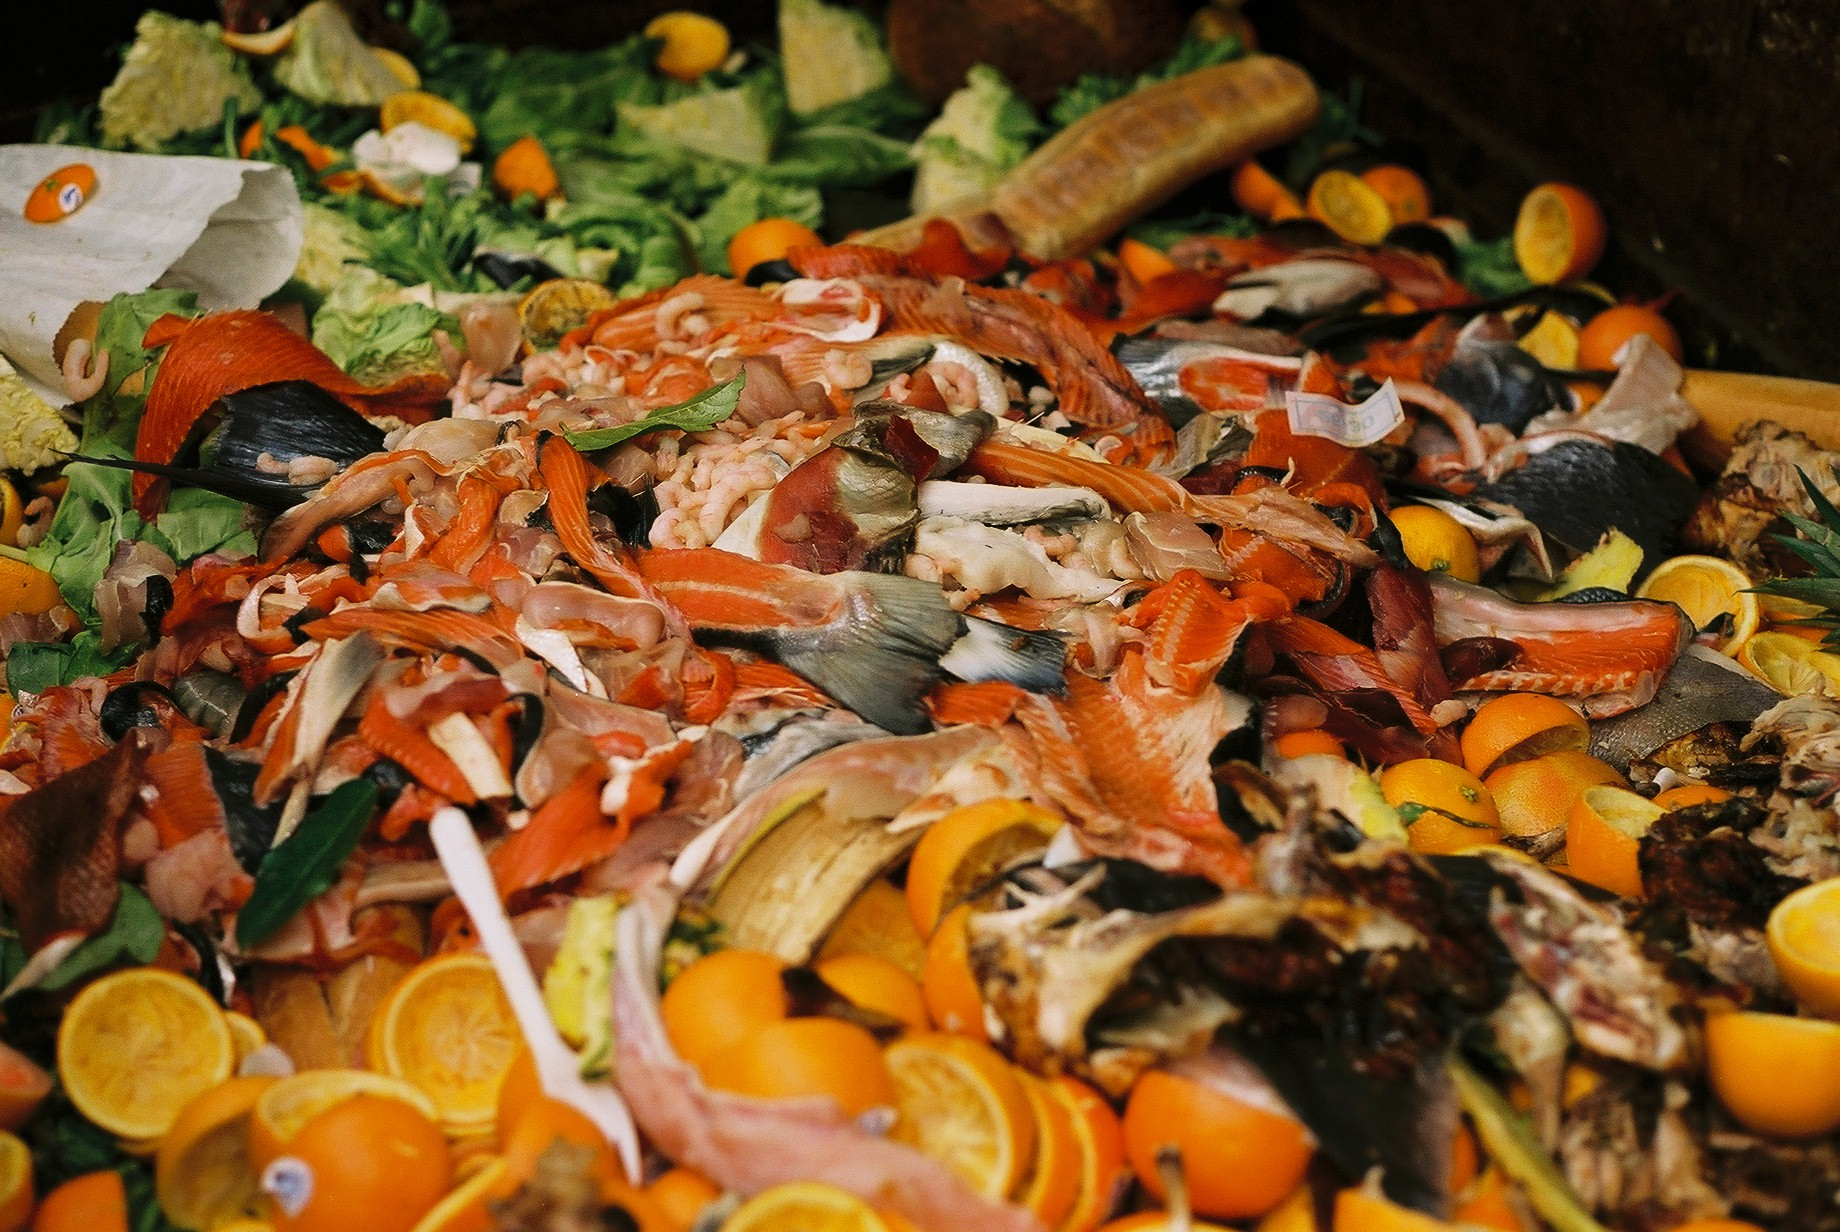 Kitchen Food Waste